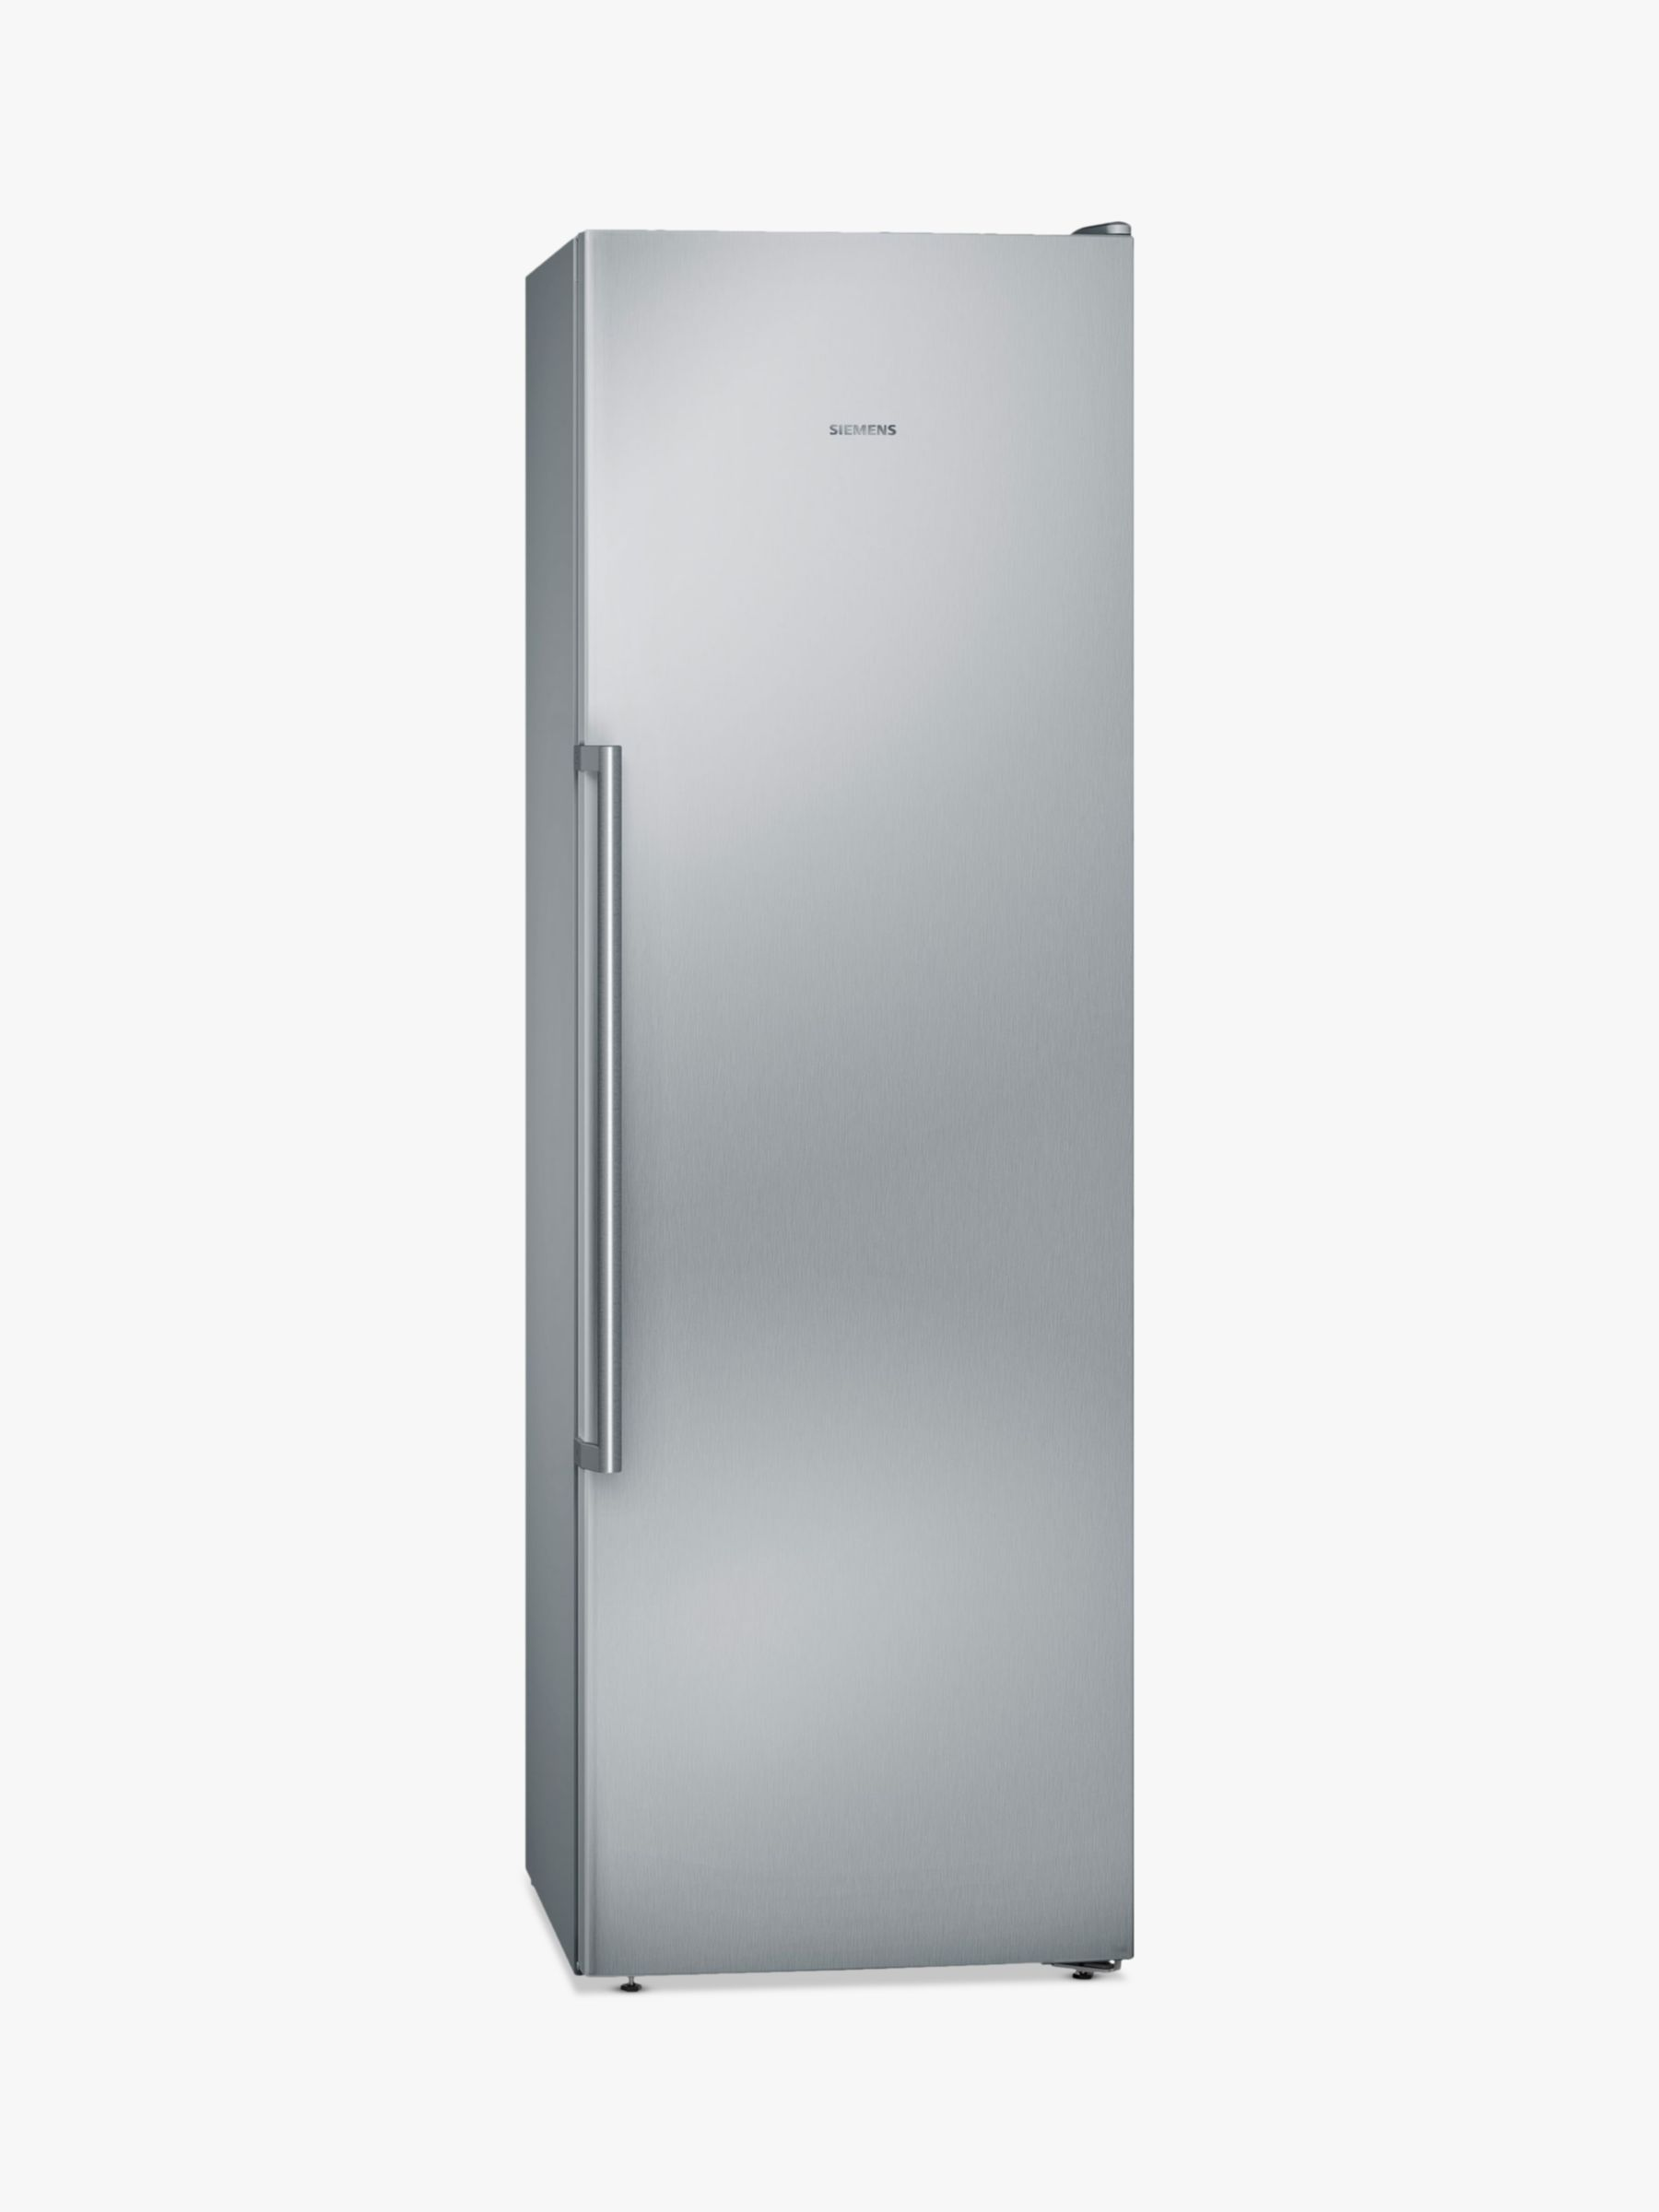 Siemens Siemens GS36NAI3P Tall Freezer, A++ Energy Rating, 60cm Wide, Silver